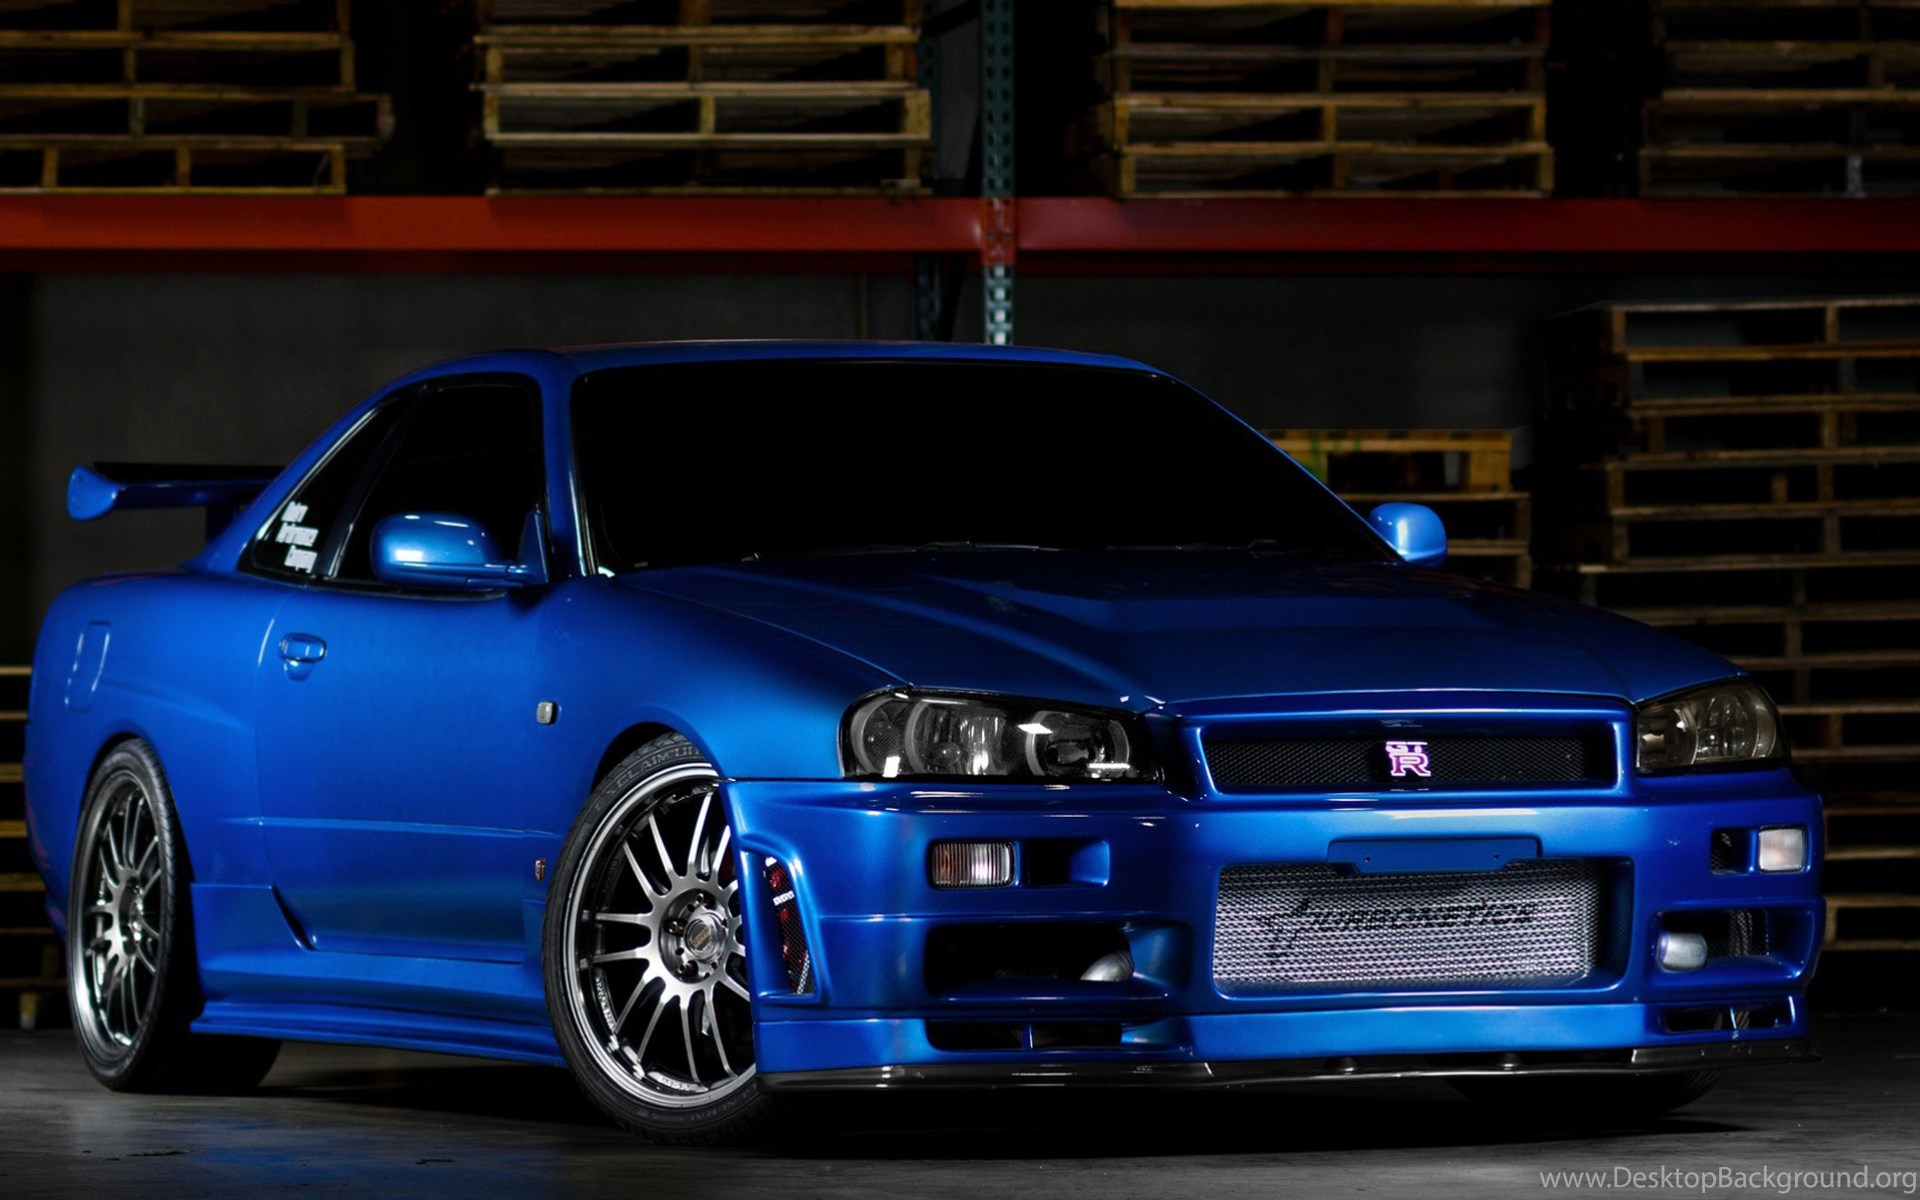 nissan skyline gtr r34 fast and furious wallpapers hot. Black Bedroom Furniture Sets. Home Design Ideas